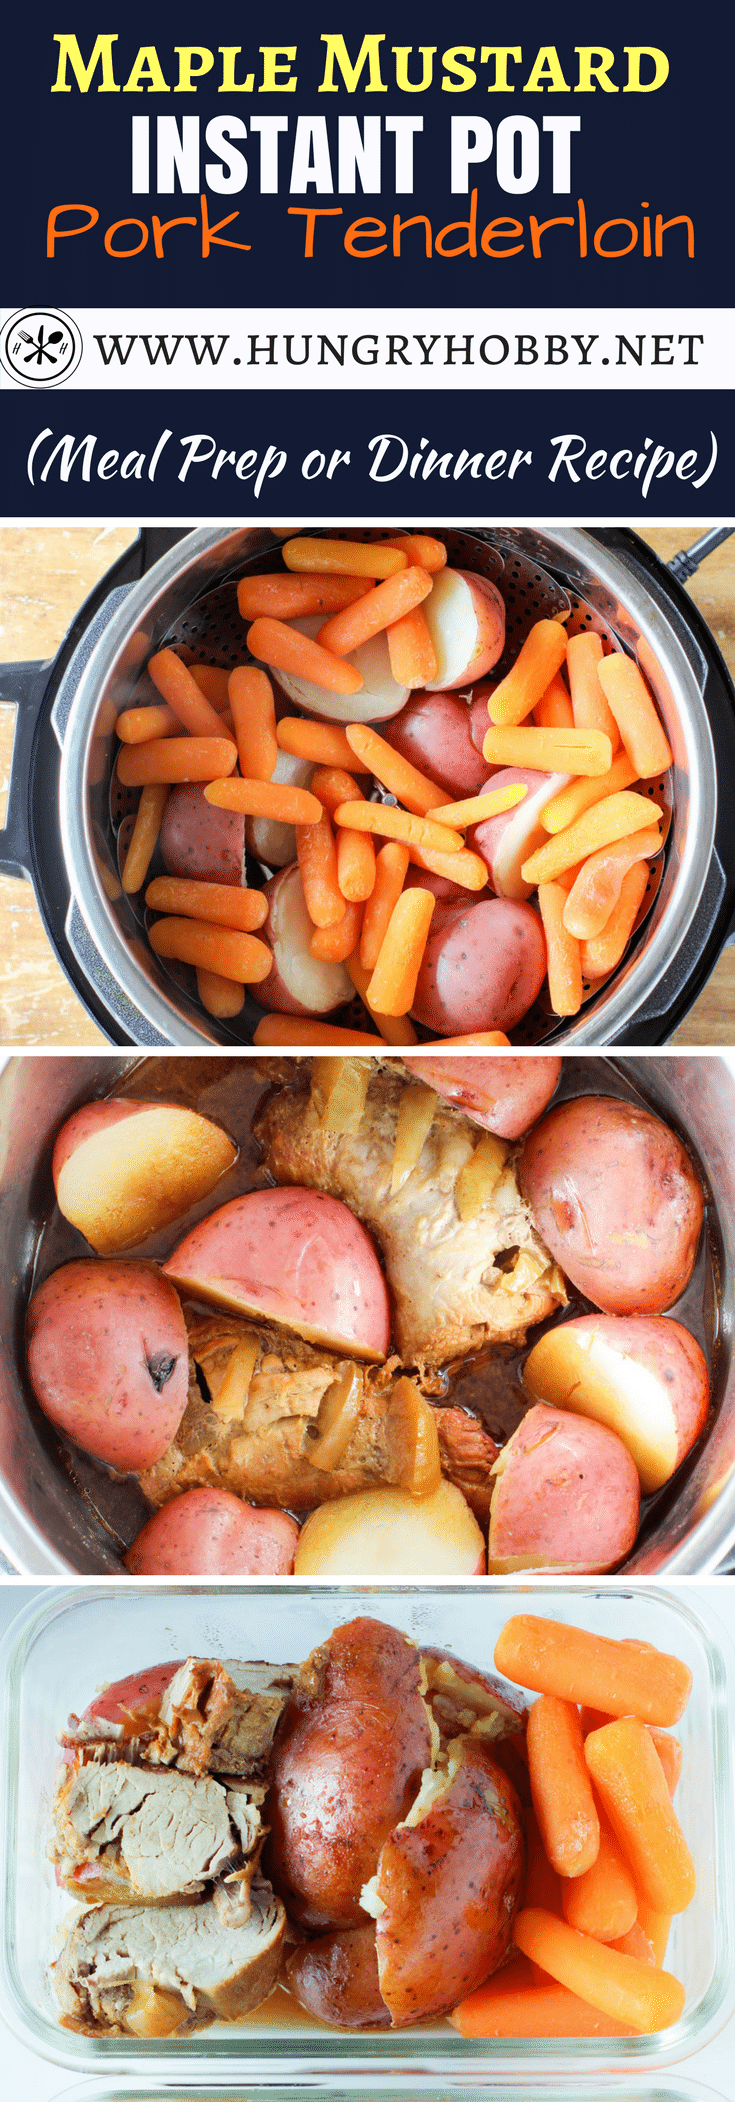 Meal Prep Maple Mustard Instant Pot Pork Tenderloin with red potatoes and baby carrots is a healthy meal prepared all in one pot with very little fuss.